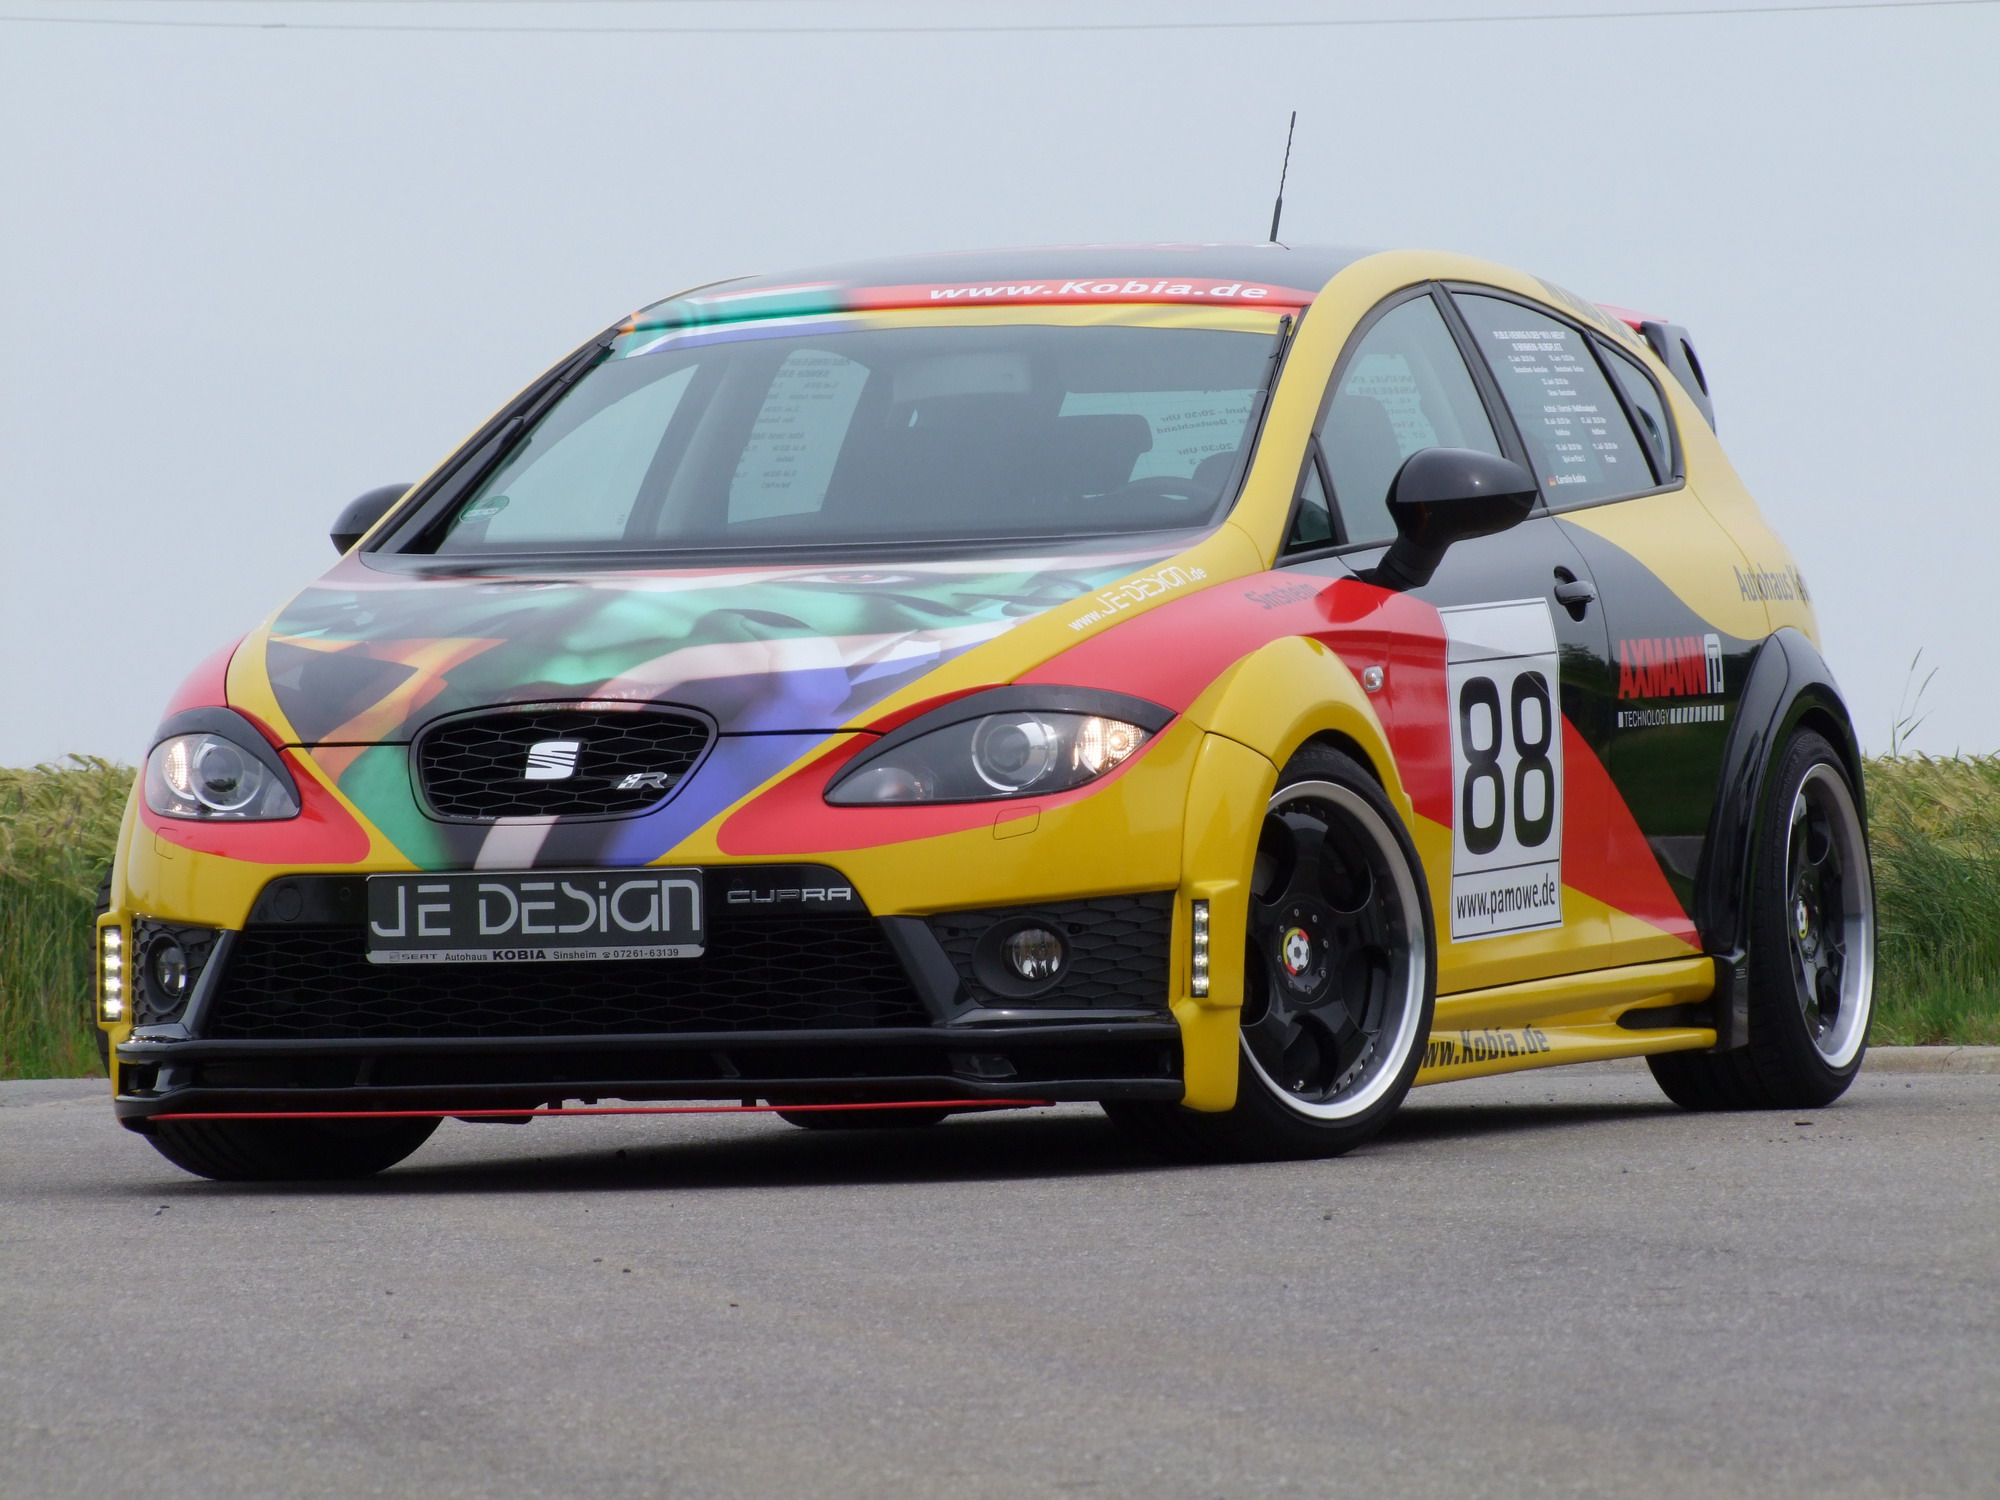 2010 seat leon cupra r by je design and kobia top speed. Black Bedroom Furniture Sets. Home Design Ideas